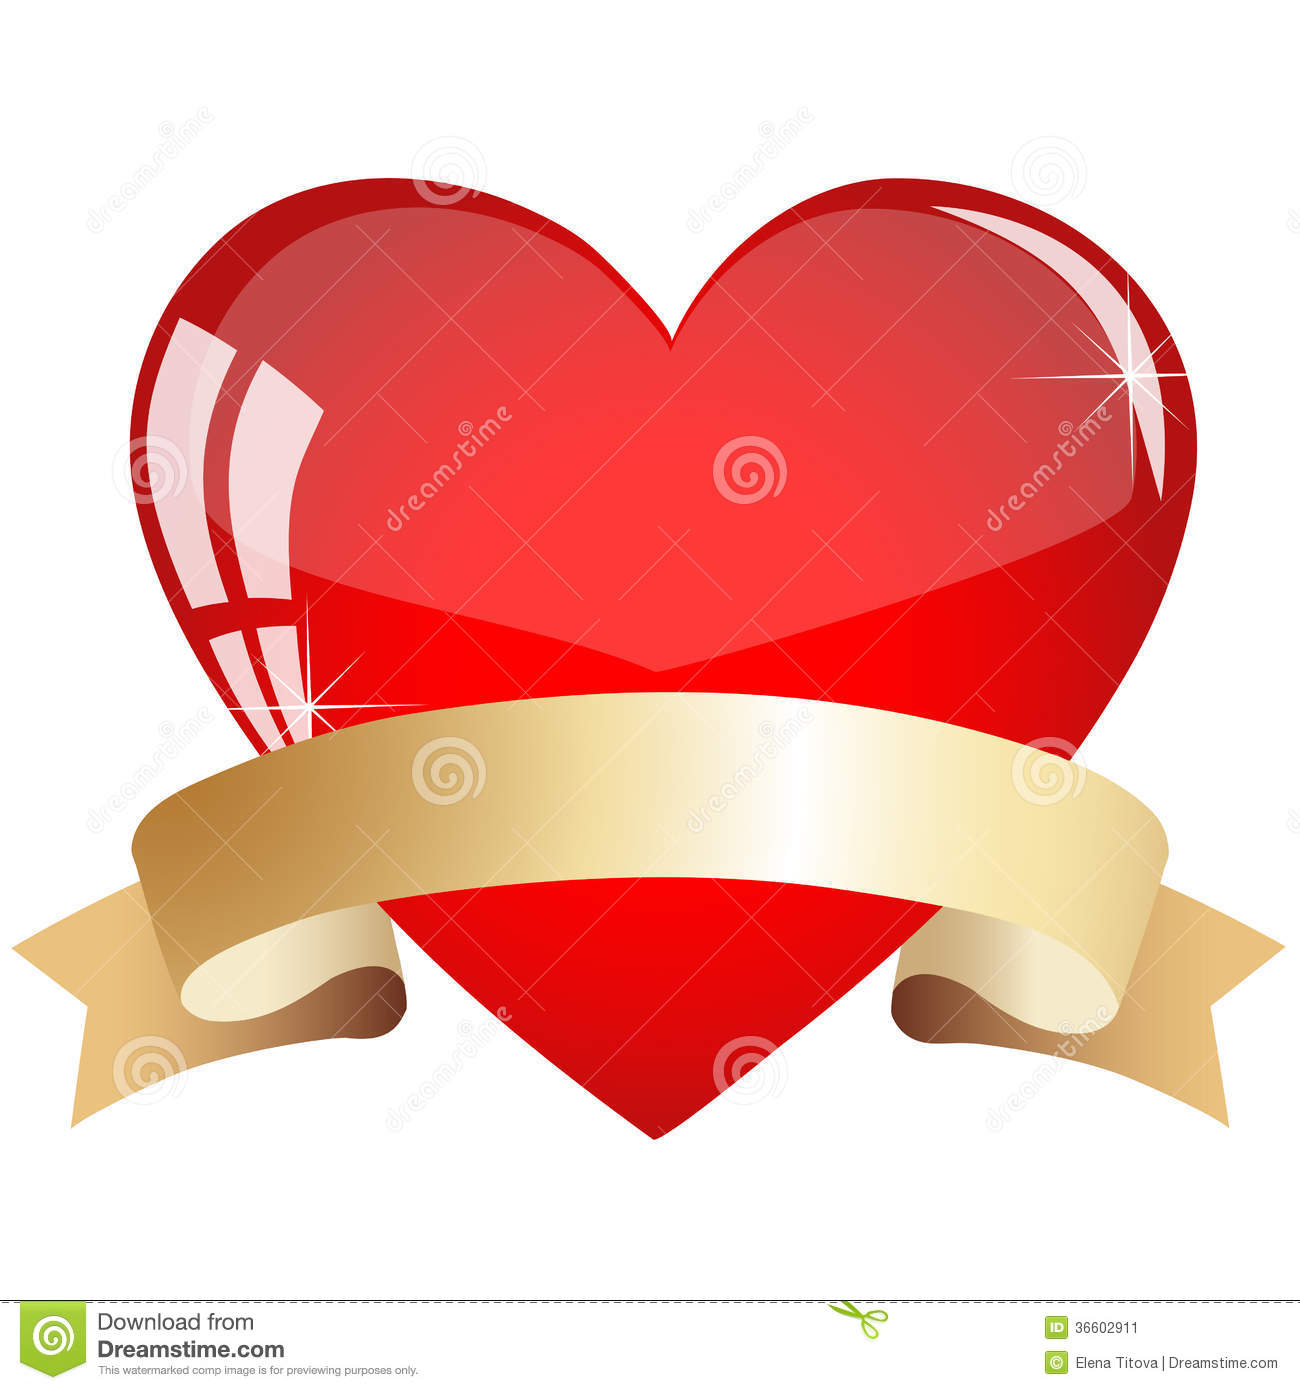 Heart With Ribbon Stock Image - Image: 36602911